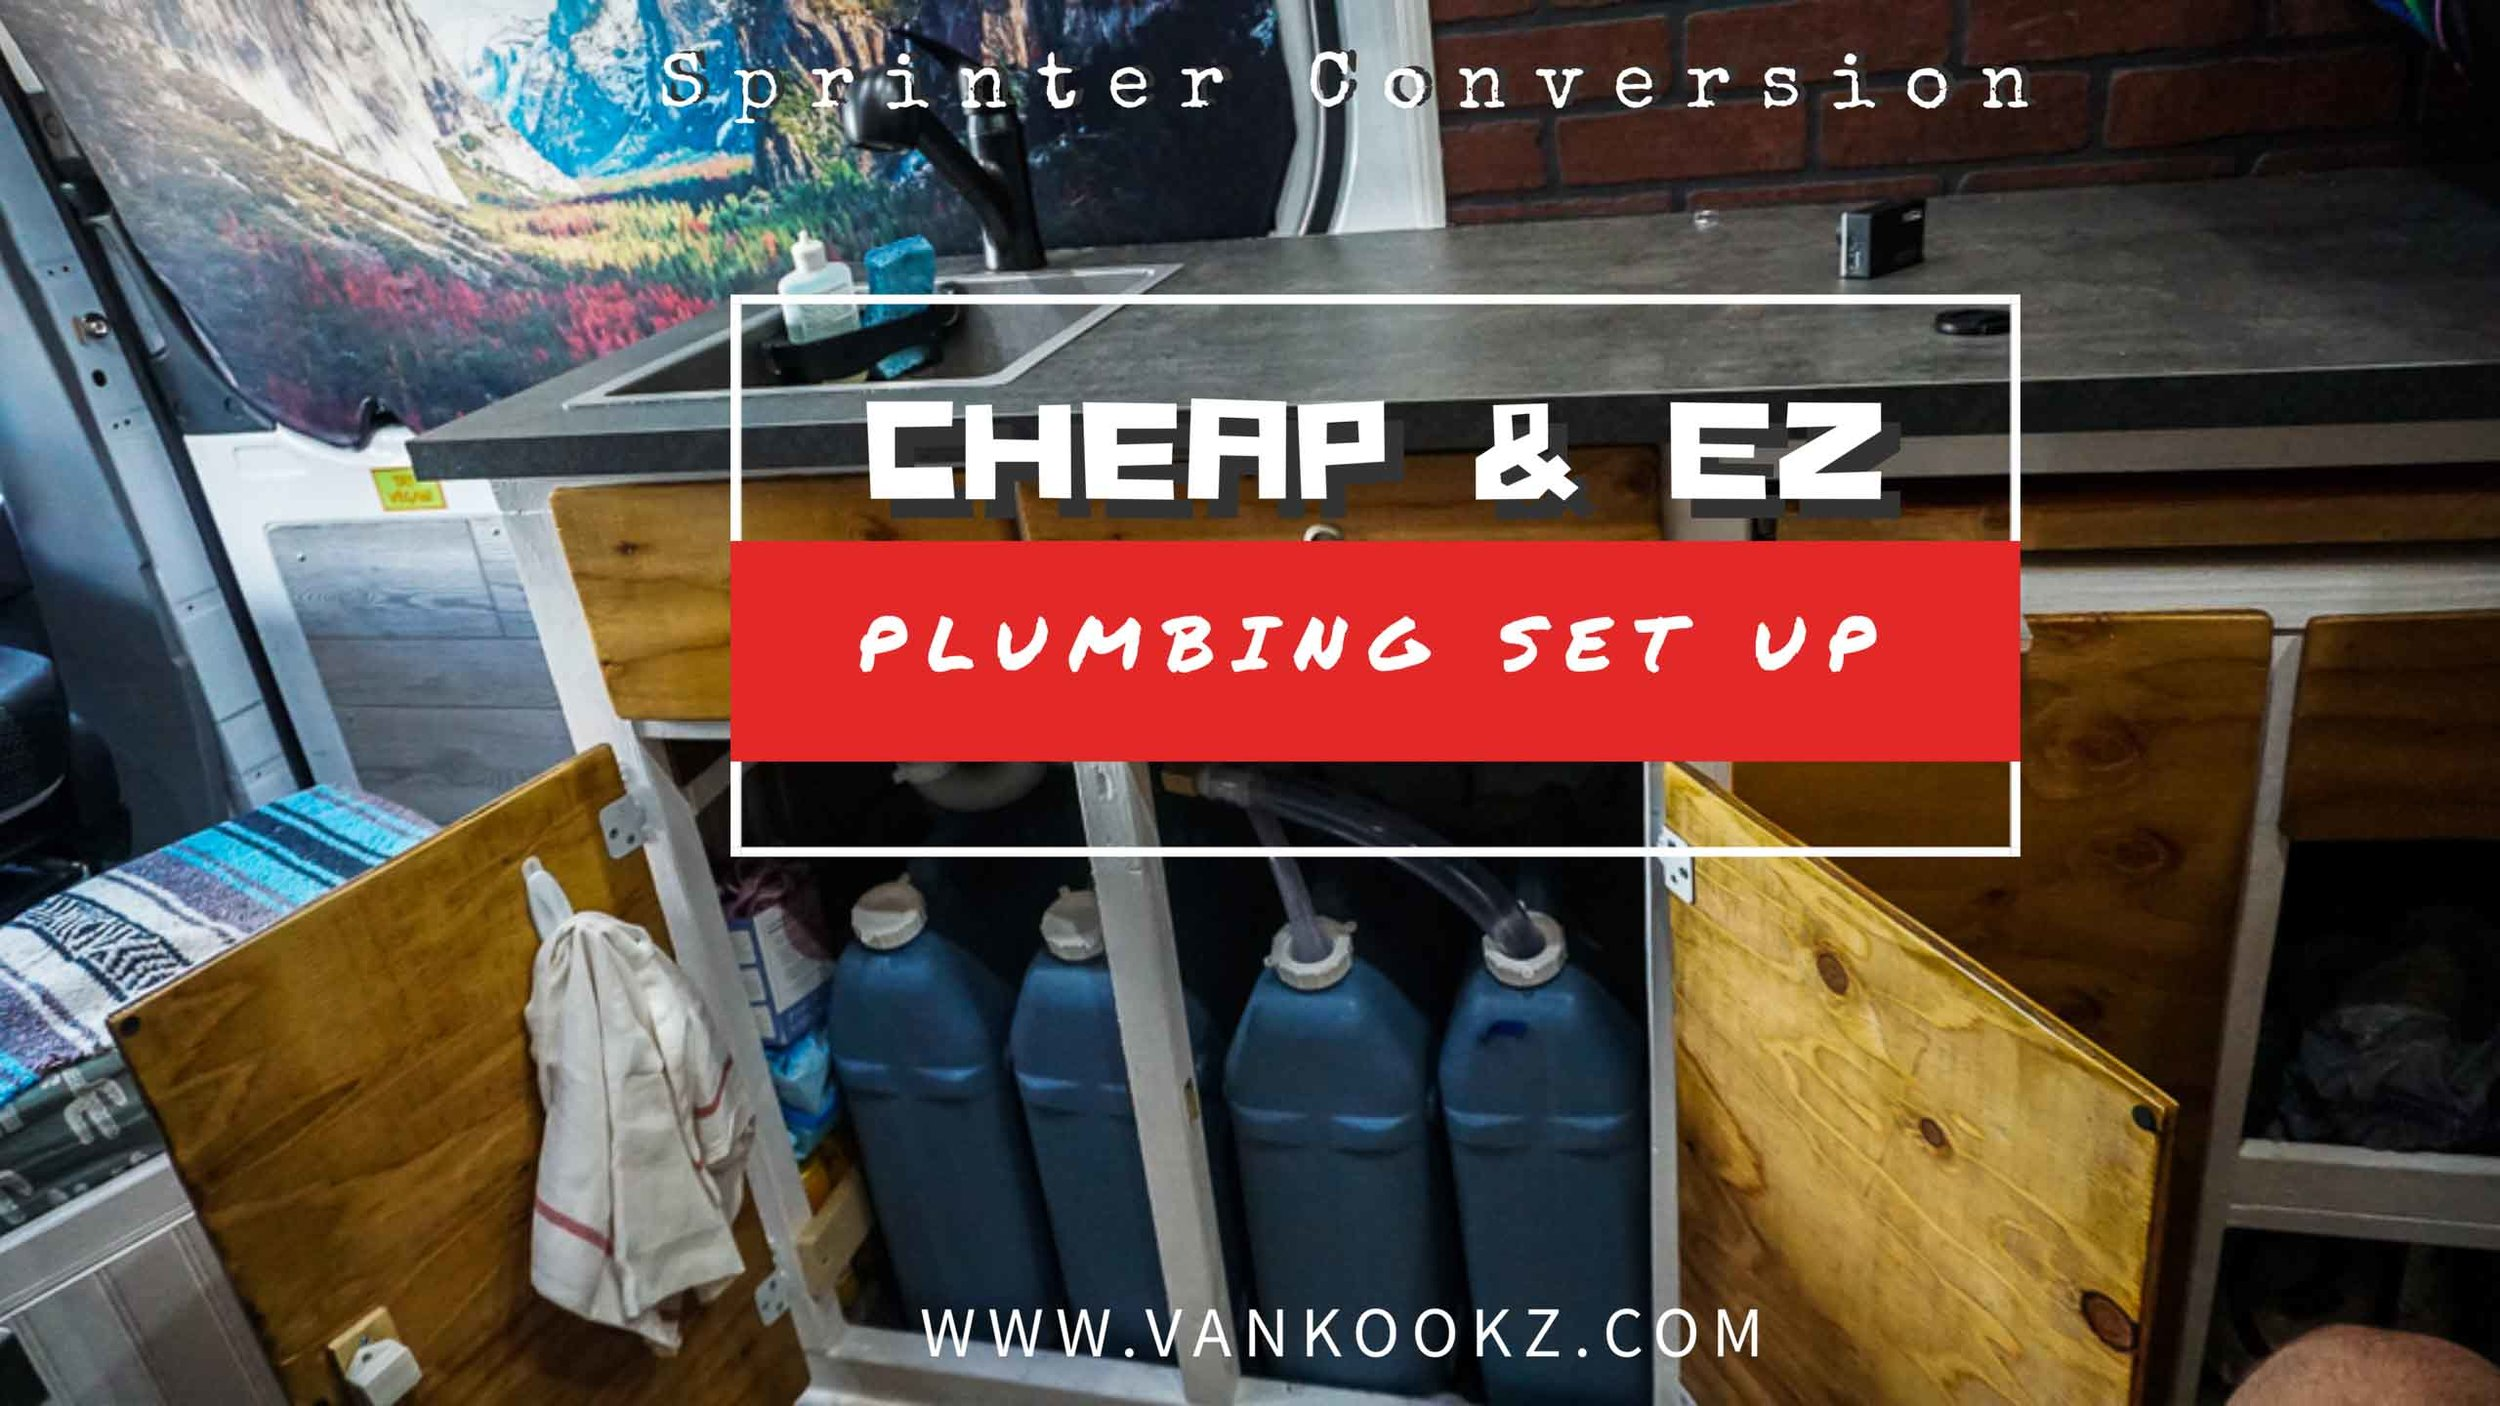 Cheap and Easy Plumbing set up in the Van - Phase 7.3 - Here, Kevin goes over our plumbing set up. It is a cheap and easy plumbing set up for those of you not looking for the commitment of under-mounting some tanks.